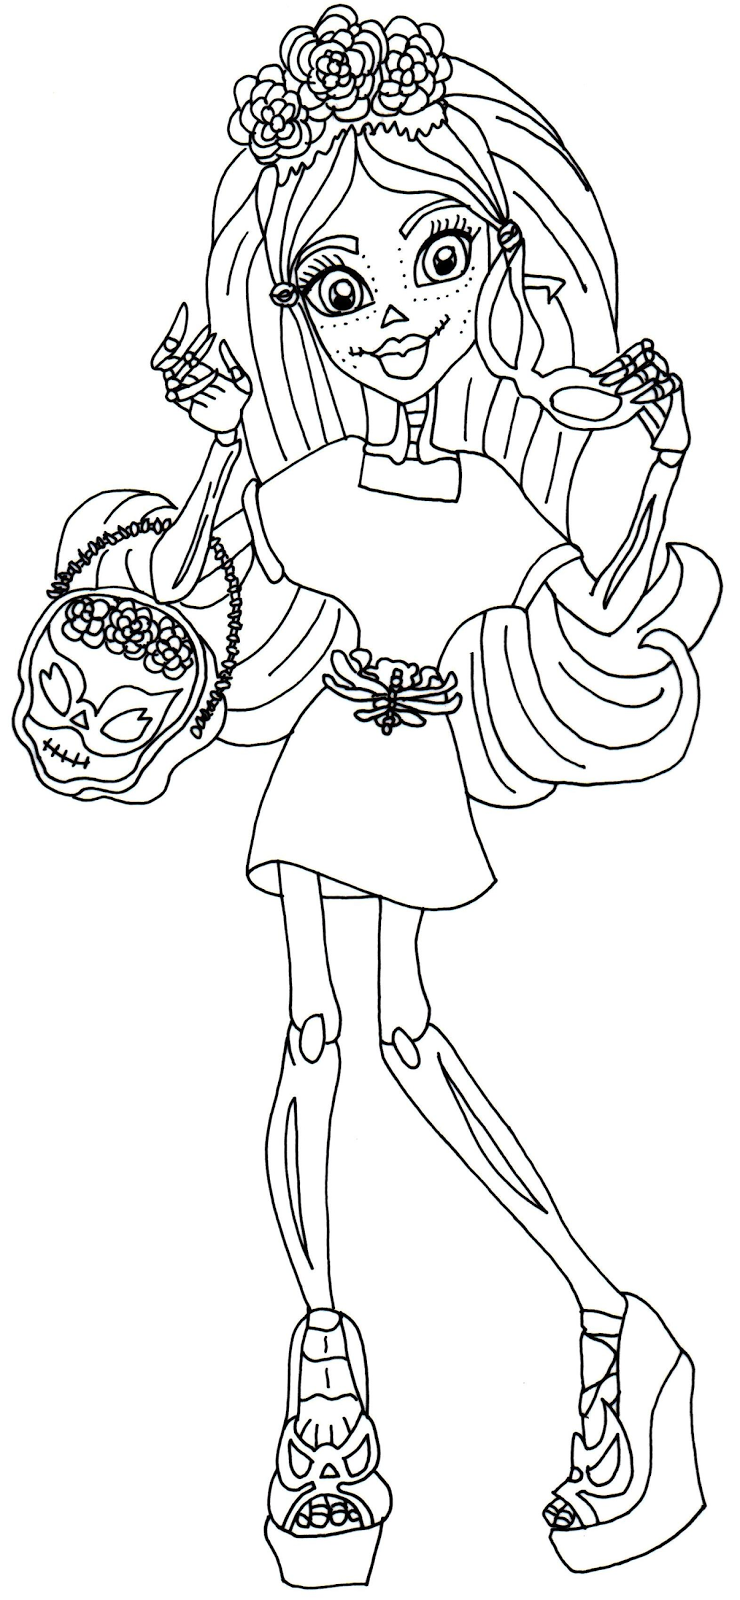 picture about Monster High Printable Coloring Pages identified as monster substantial free of charge printables Skelita Calaveras I take pleasure in